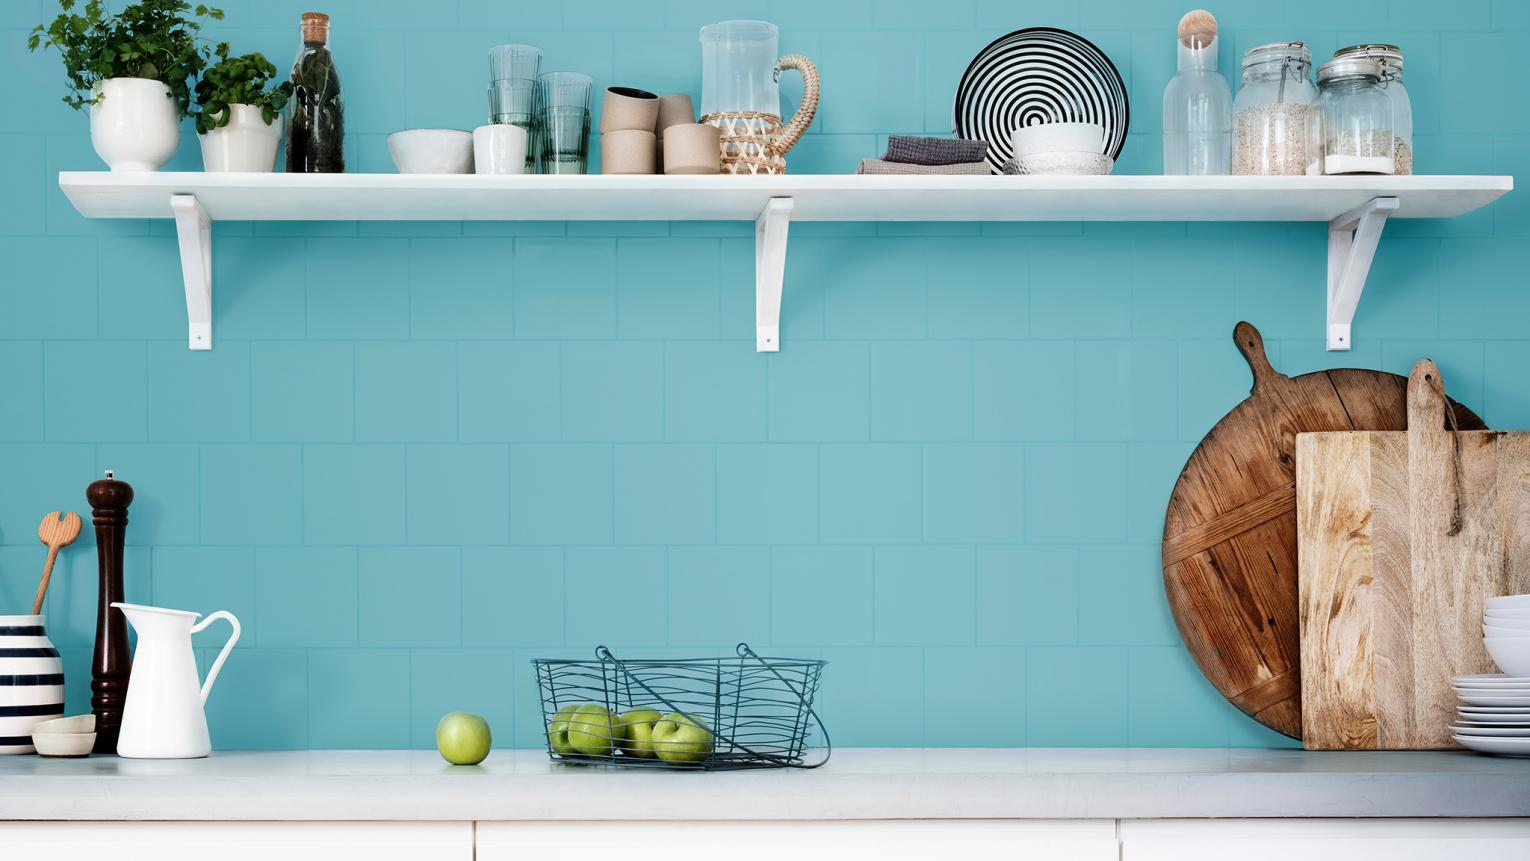 dulux-simply-refresh-tiles-ideas-global-1